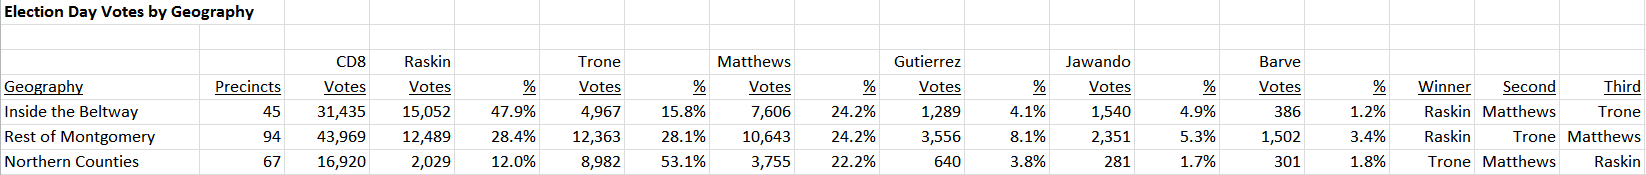 CD8 Votes by Geography 2